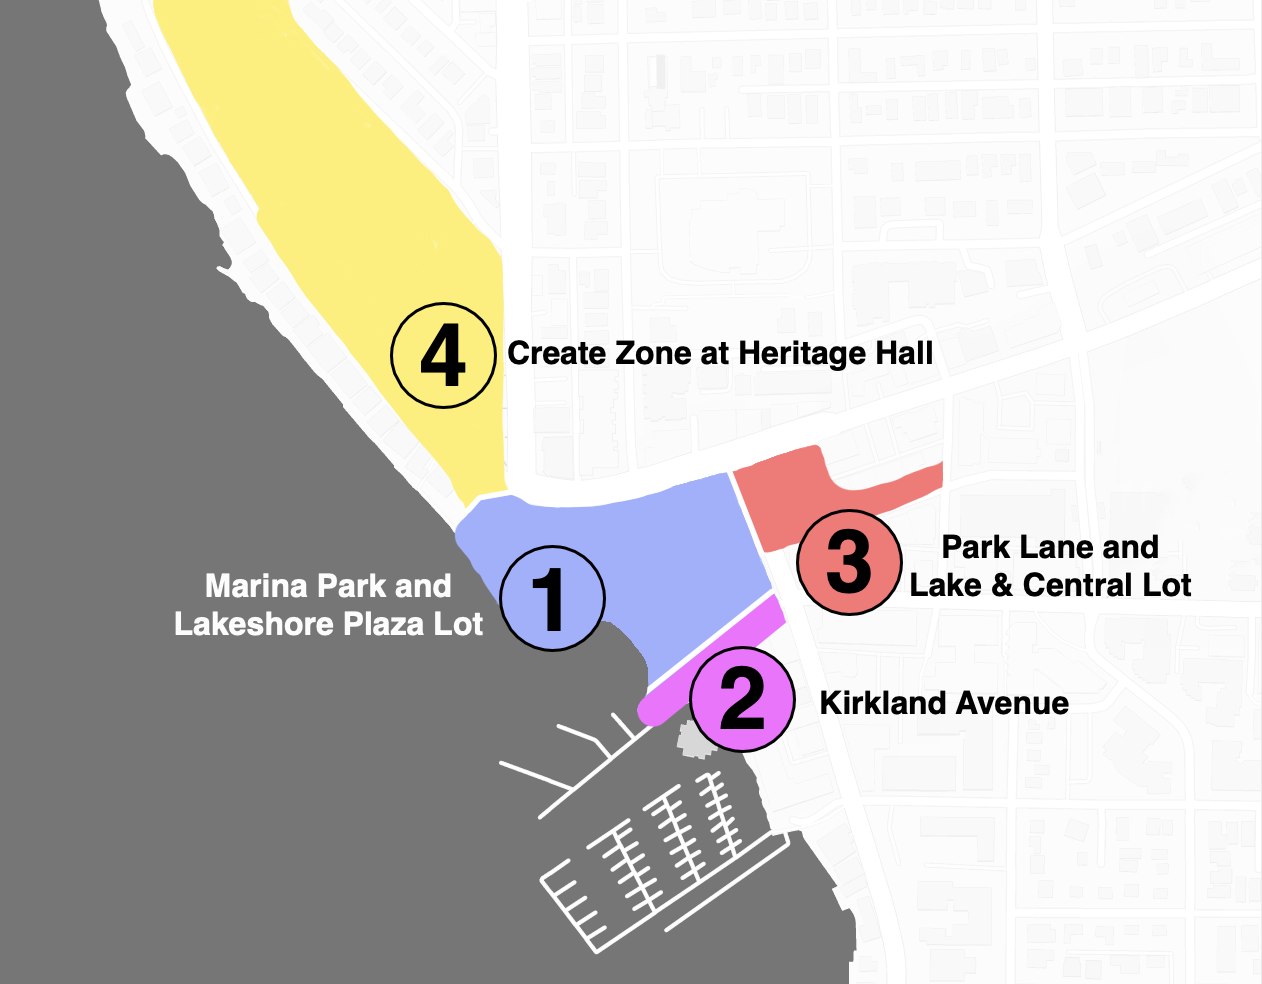 The fair will take place in Zone 3 within Park Lane and the Lake and Central Parking Lot.